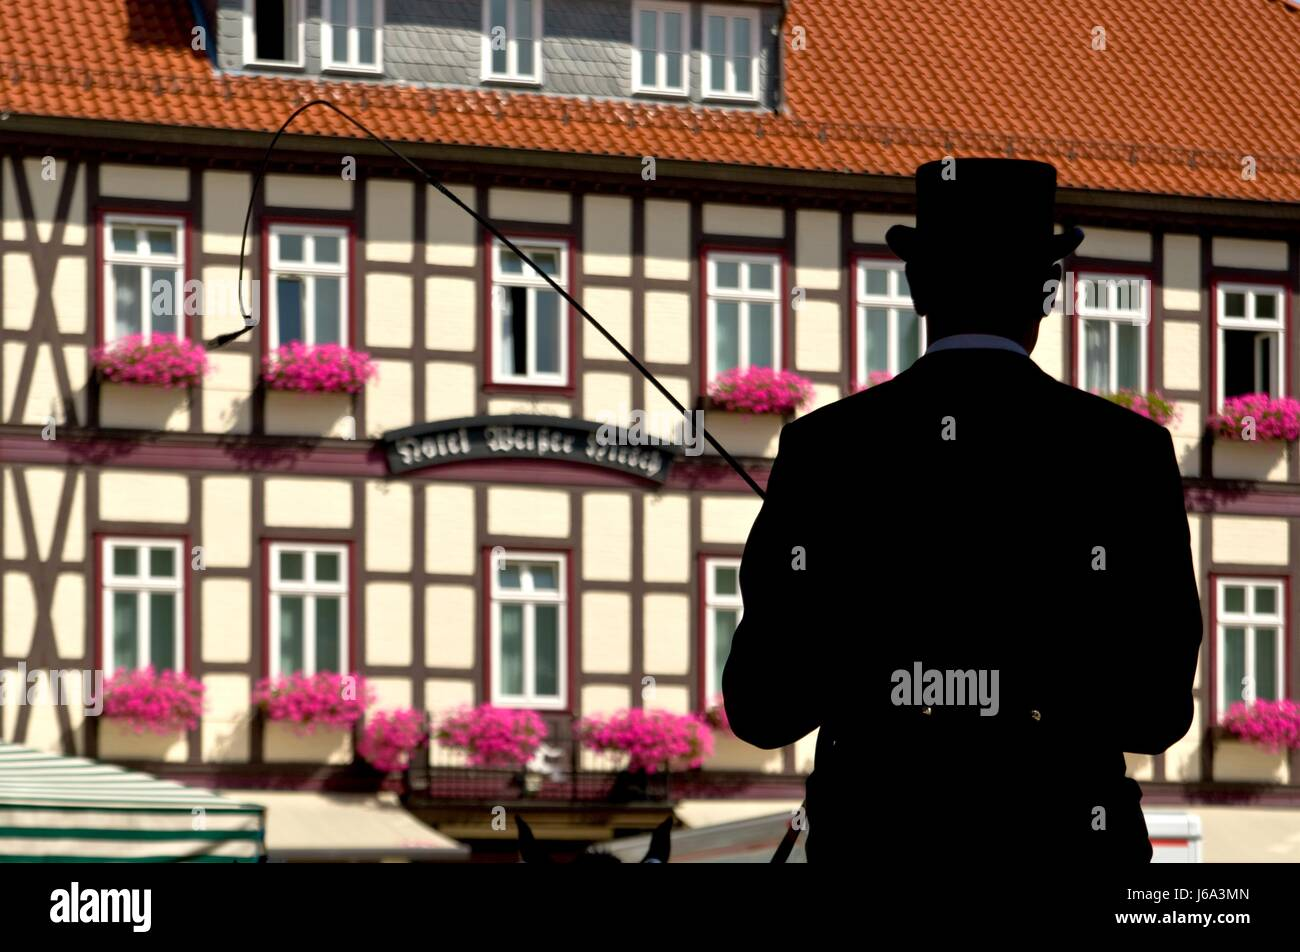 kutscher silhouette in front of half-timbered house Stock Photo